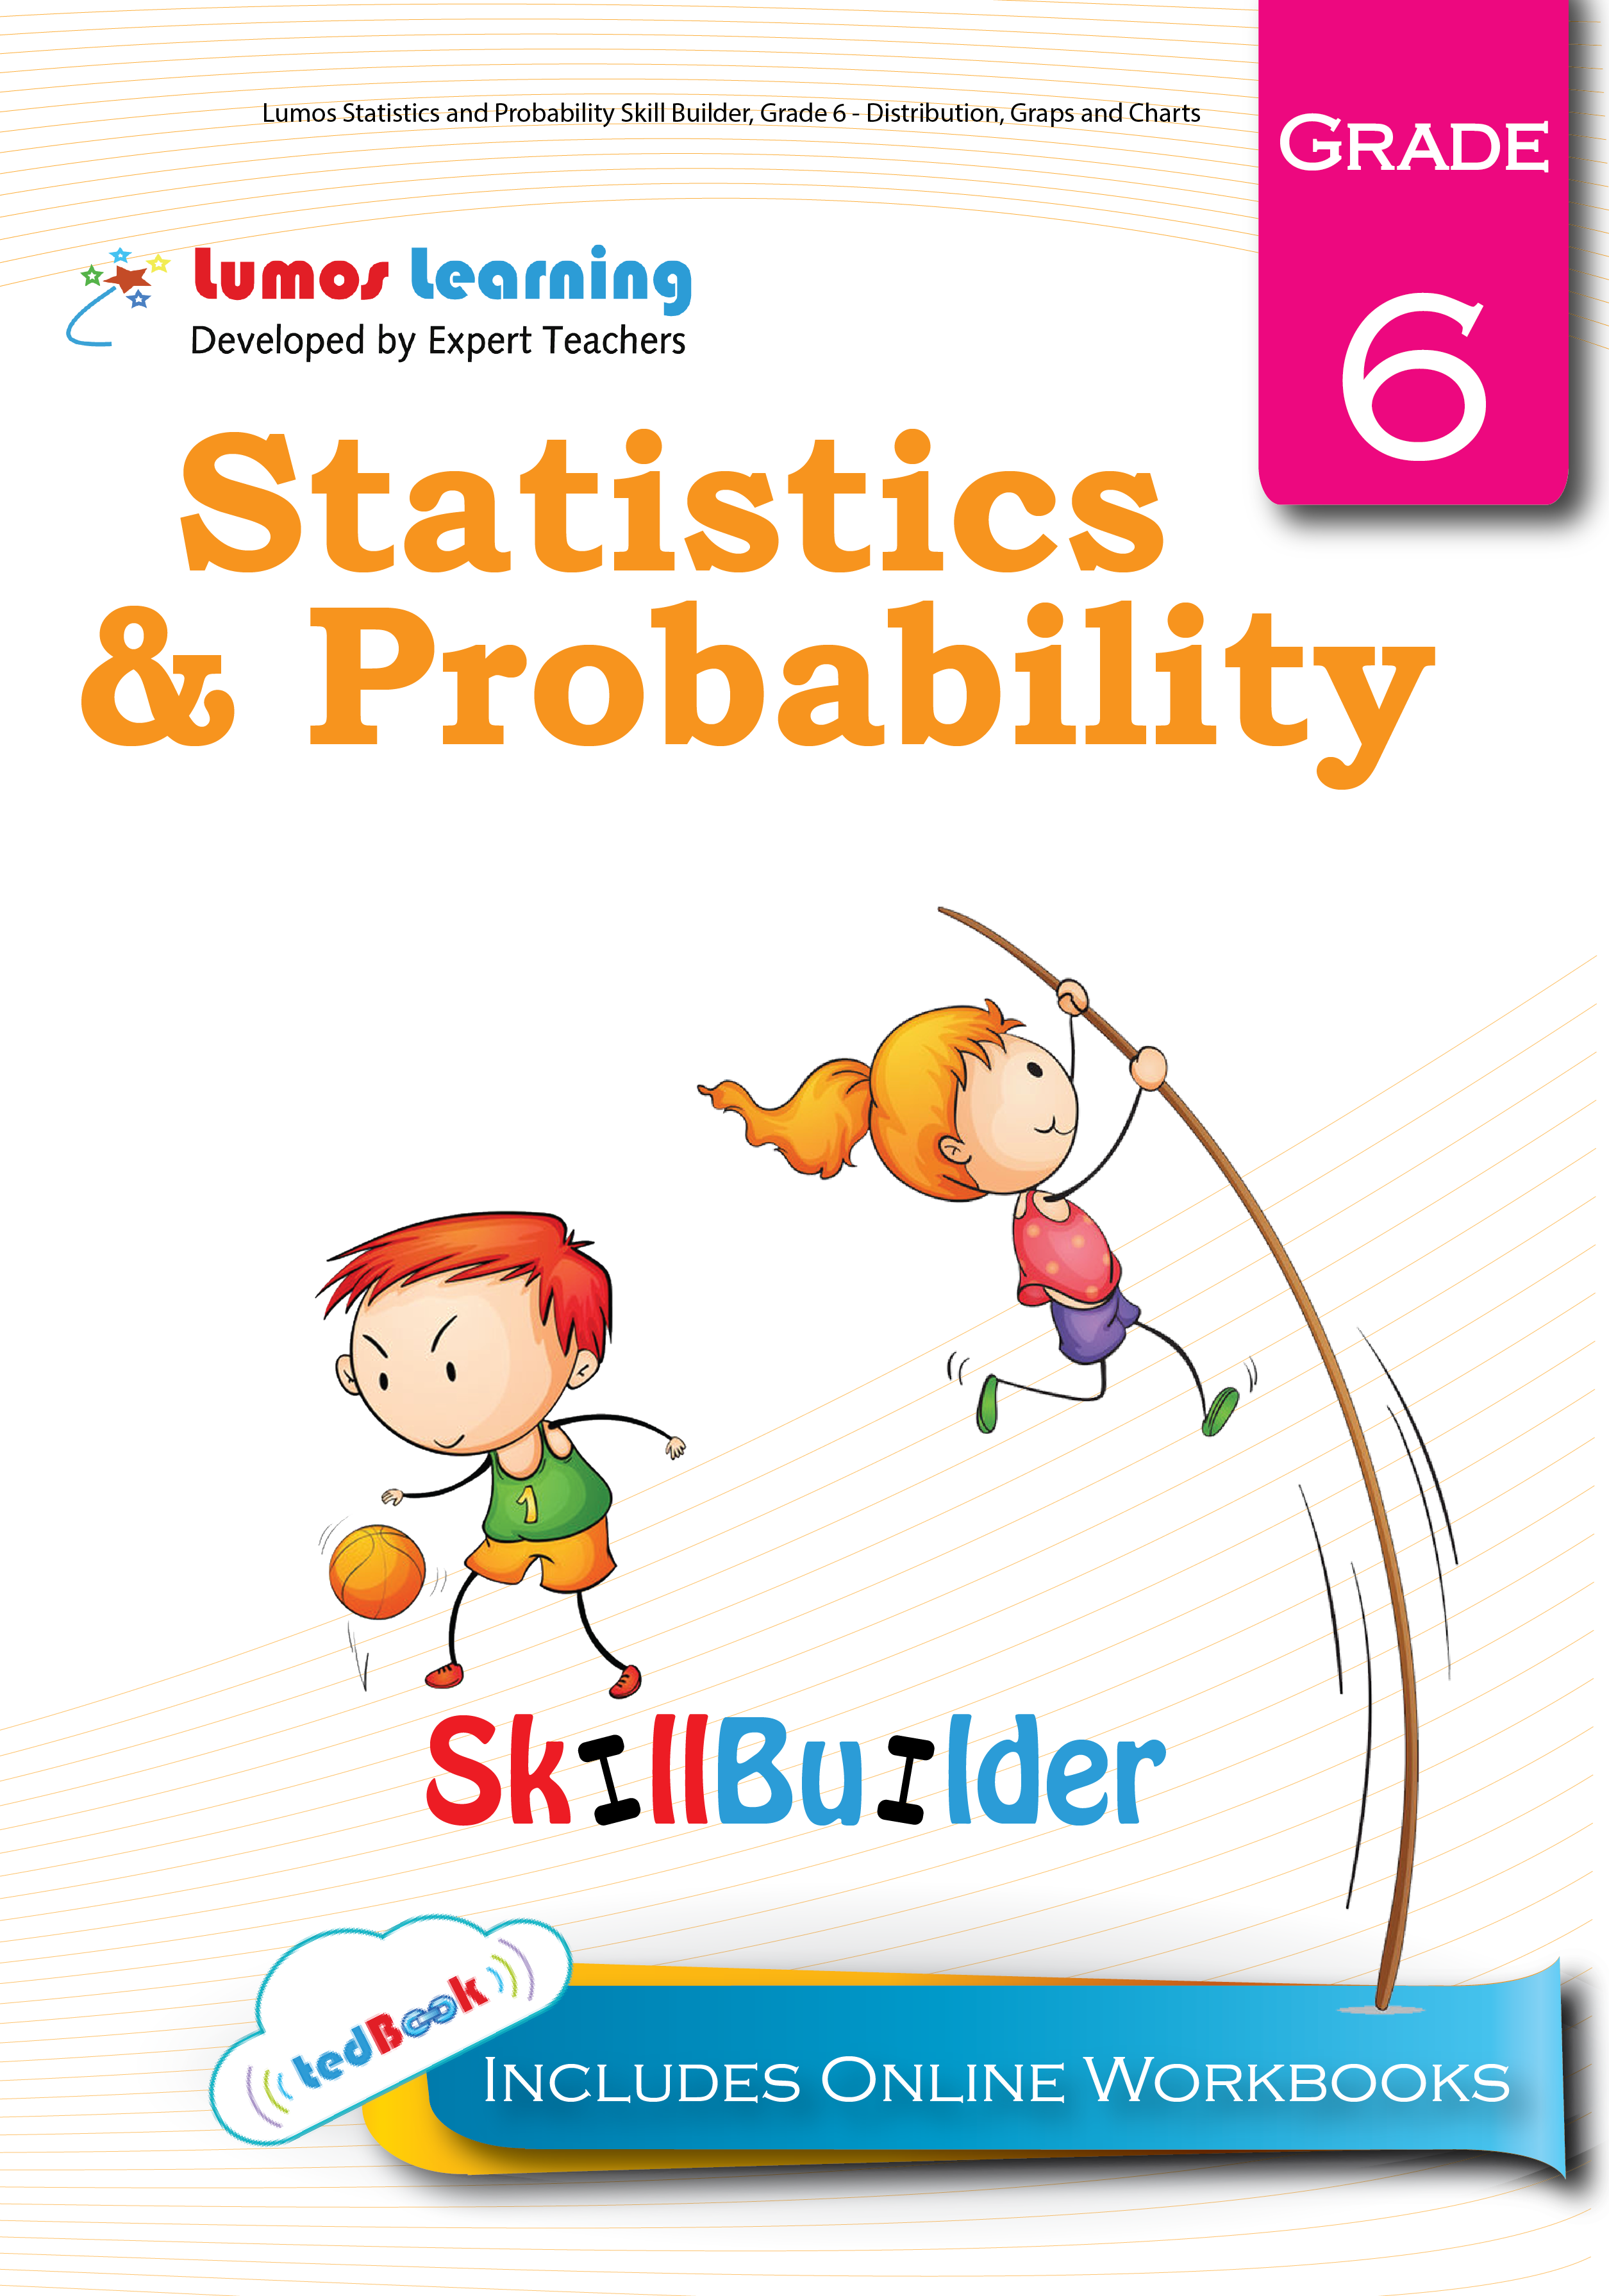 Statistics and Probability grade 6